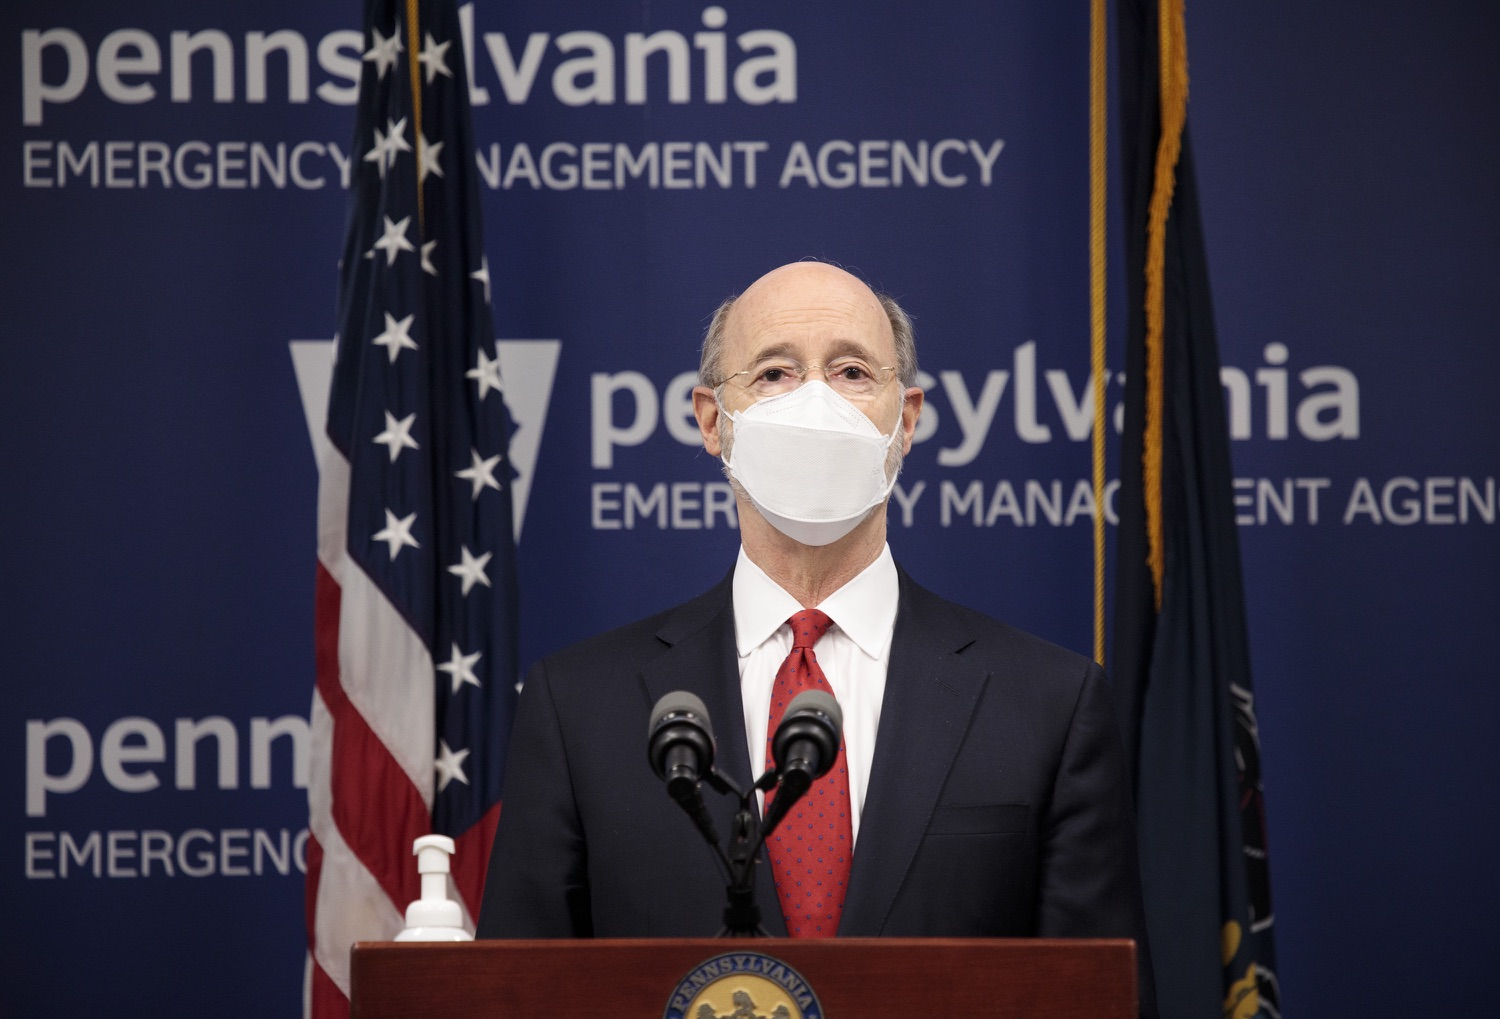 "<a href=""https://filesource.wostreaming.net/commonwealthofpa/photo/18540_gov_backtowork_dz_15.jpg"" target=""_blank"">⇣ Download Photo<br></a>Pennsylvania Governor Tom Wolf speaking at the press conference. The COVID-19 global pandemic has significantly affected Pennsylvania workers, businesses and communities. To bolster economic recovery efforts and position Pennsylvania for economic growth, Governor Tom Wolf today unveiled his Back to Work PA plan.   Harrisburg, PA  February 22, 2021"